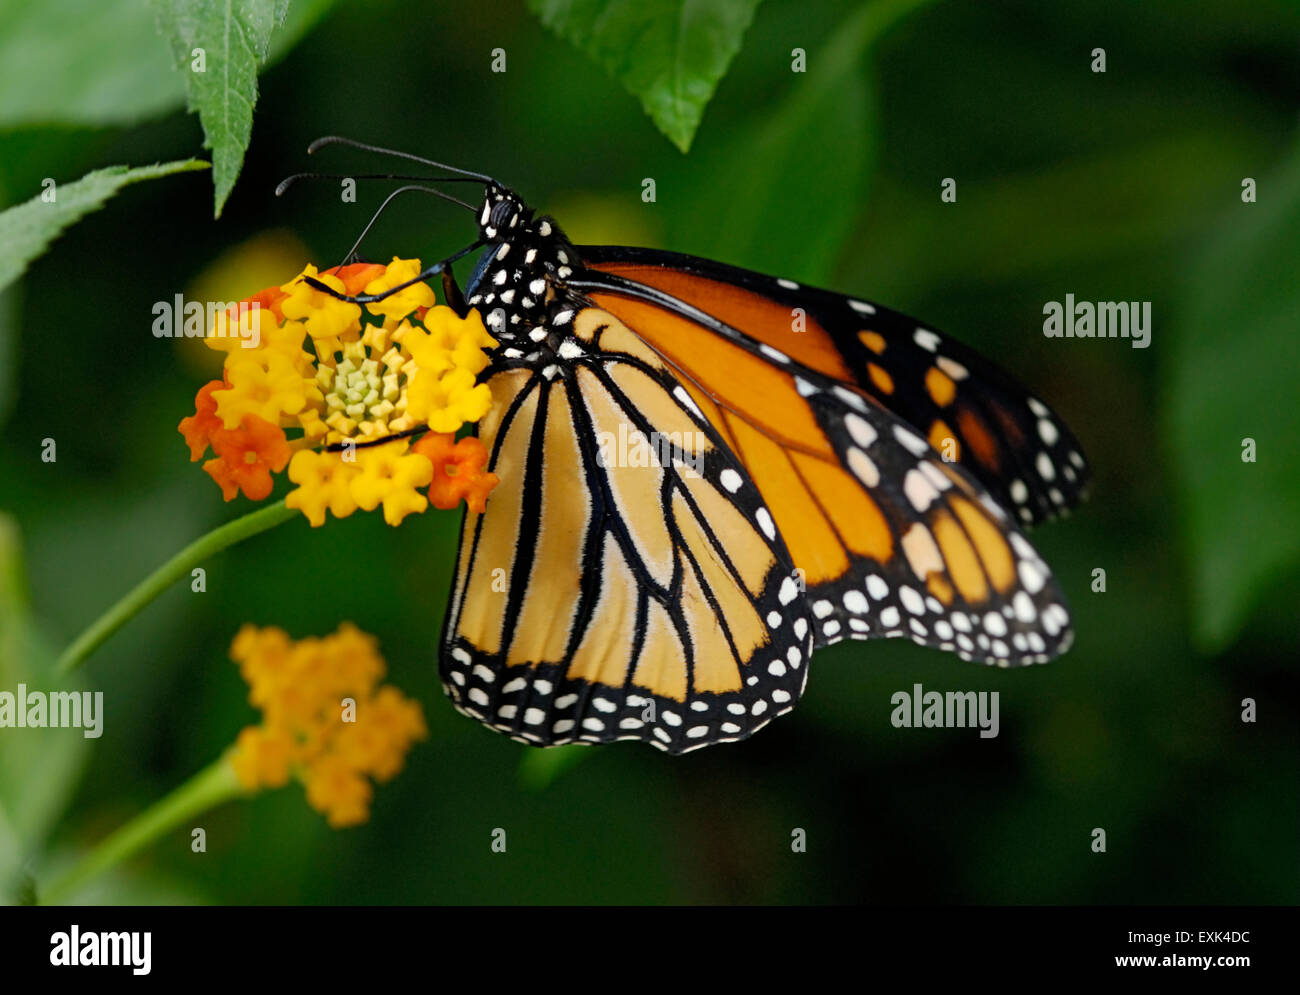 Monarch butterfly, Danaus plexippus, feeding on Lantana sp. flower the butterfly's proboscis is seen extending - Stock Image